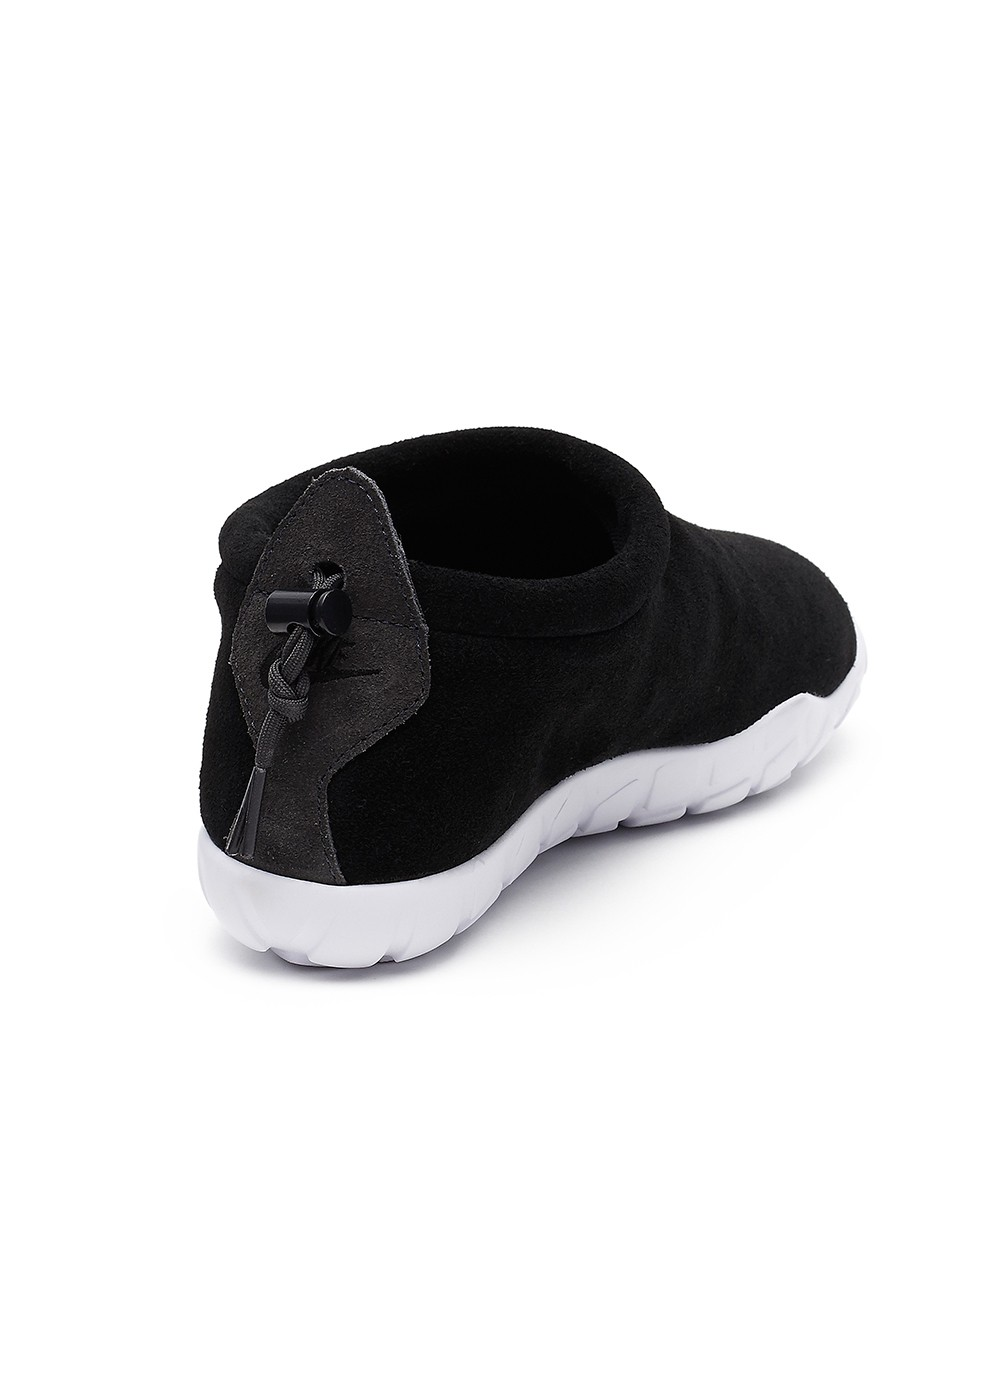 【NIKE】AIR MOC ULTRA 862440-001|BLACK|スニーカー|Styles